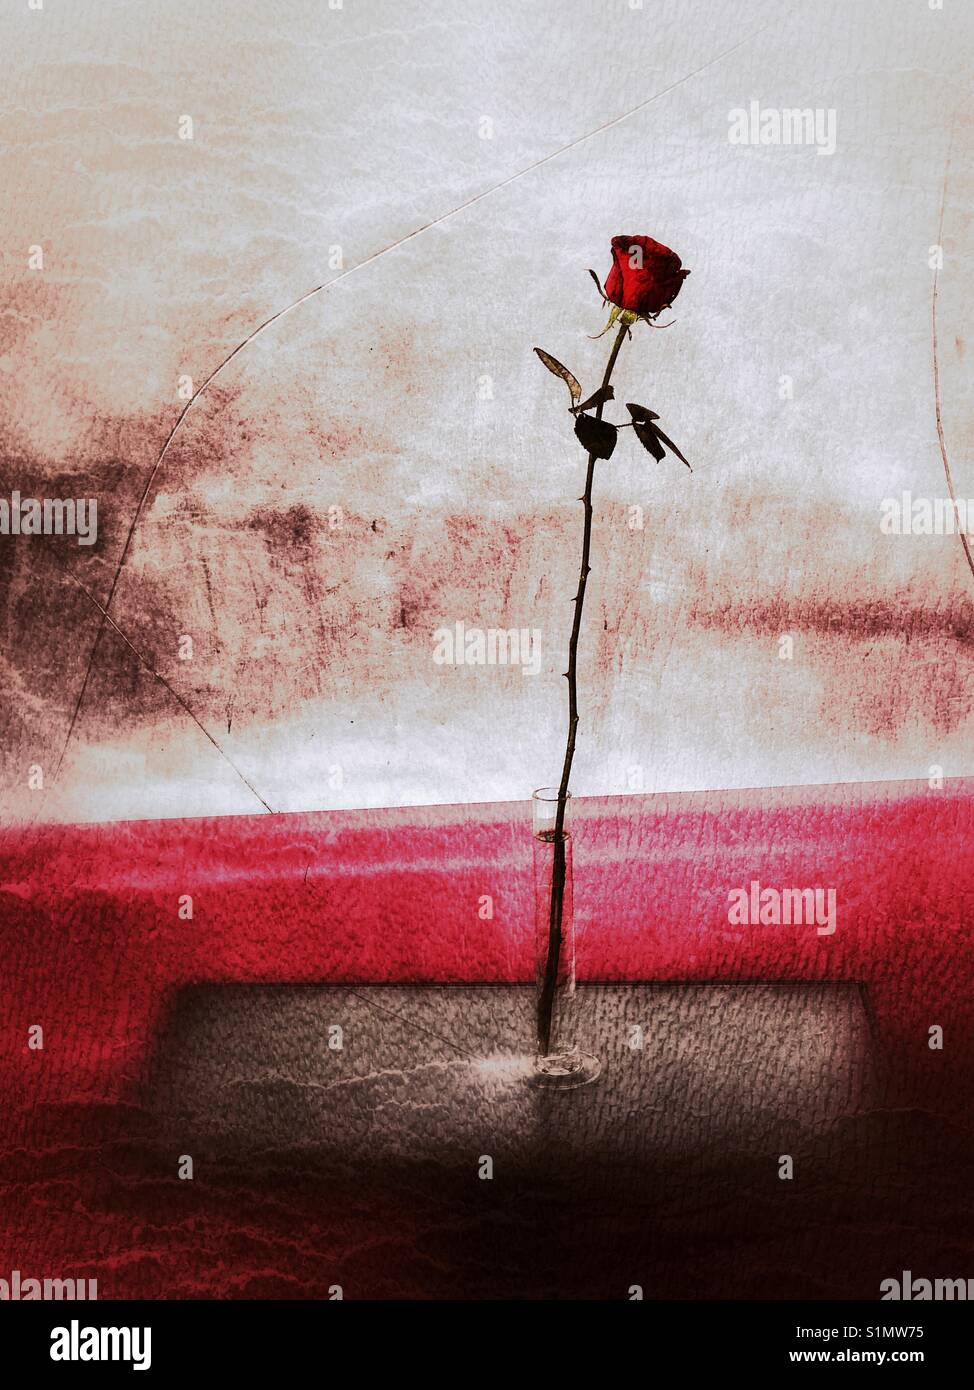 A solitary red rose in a vase on a table - Stock Image